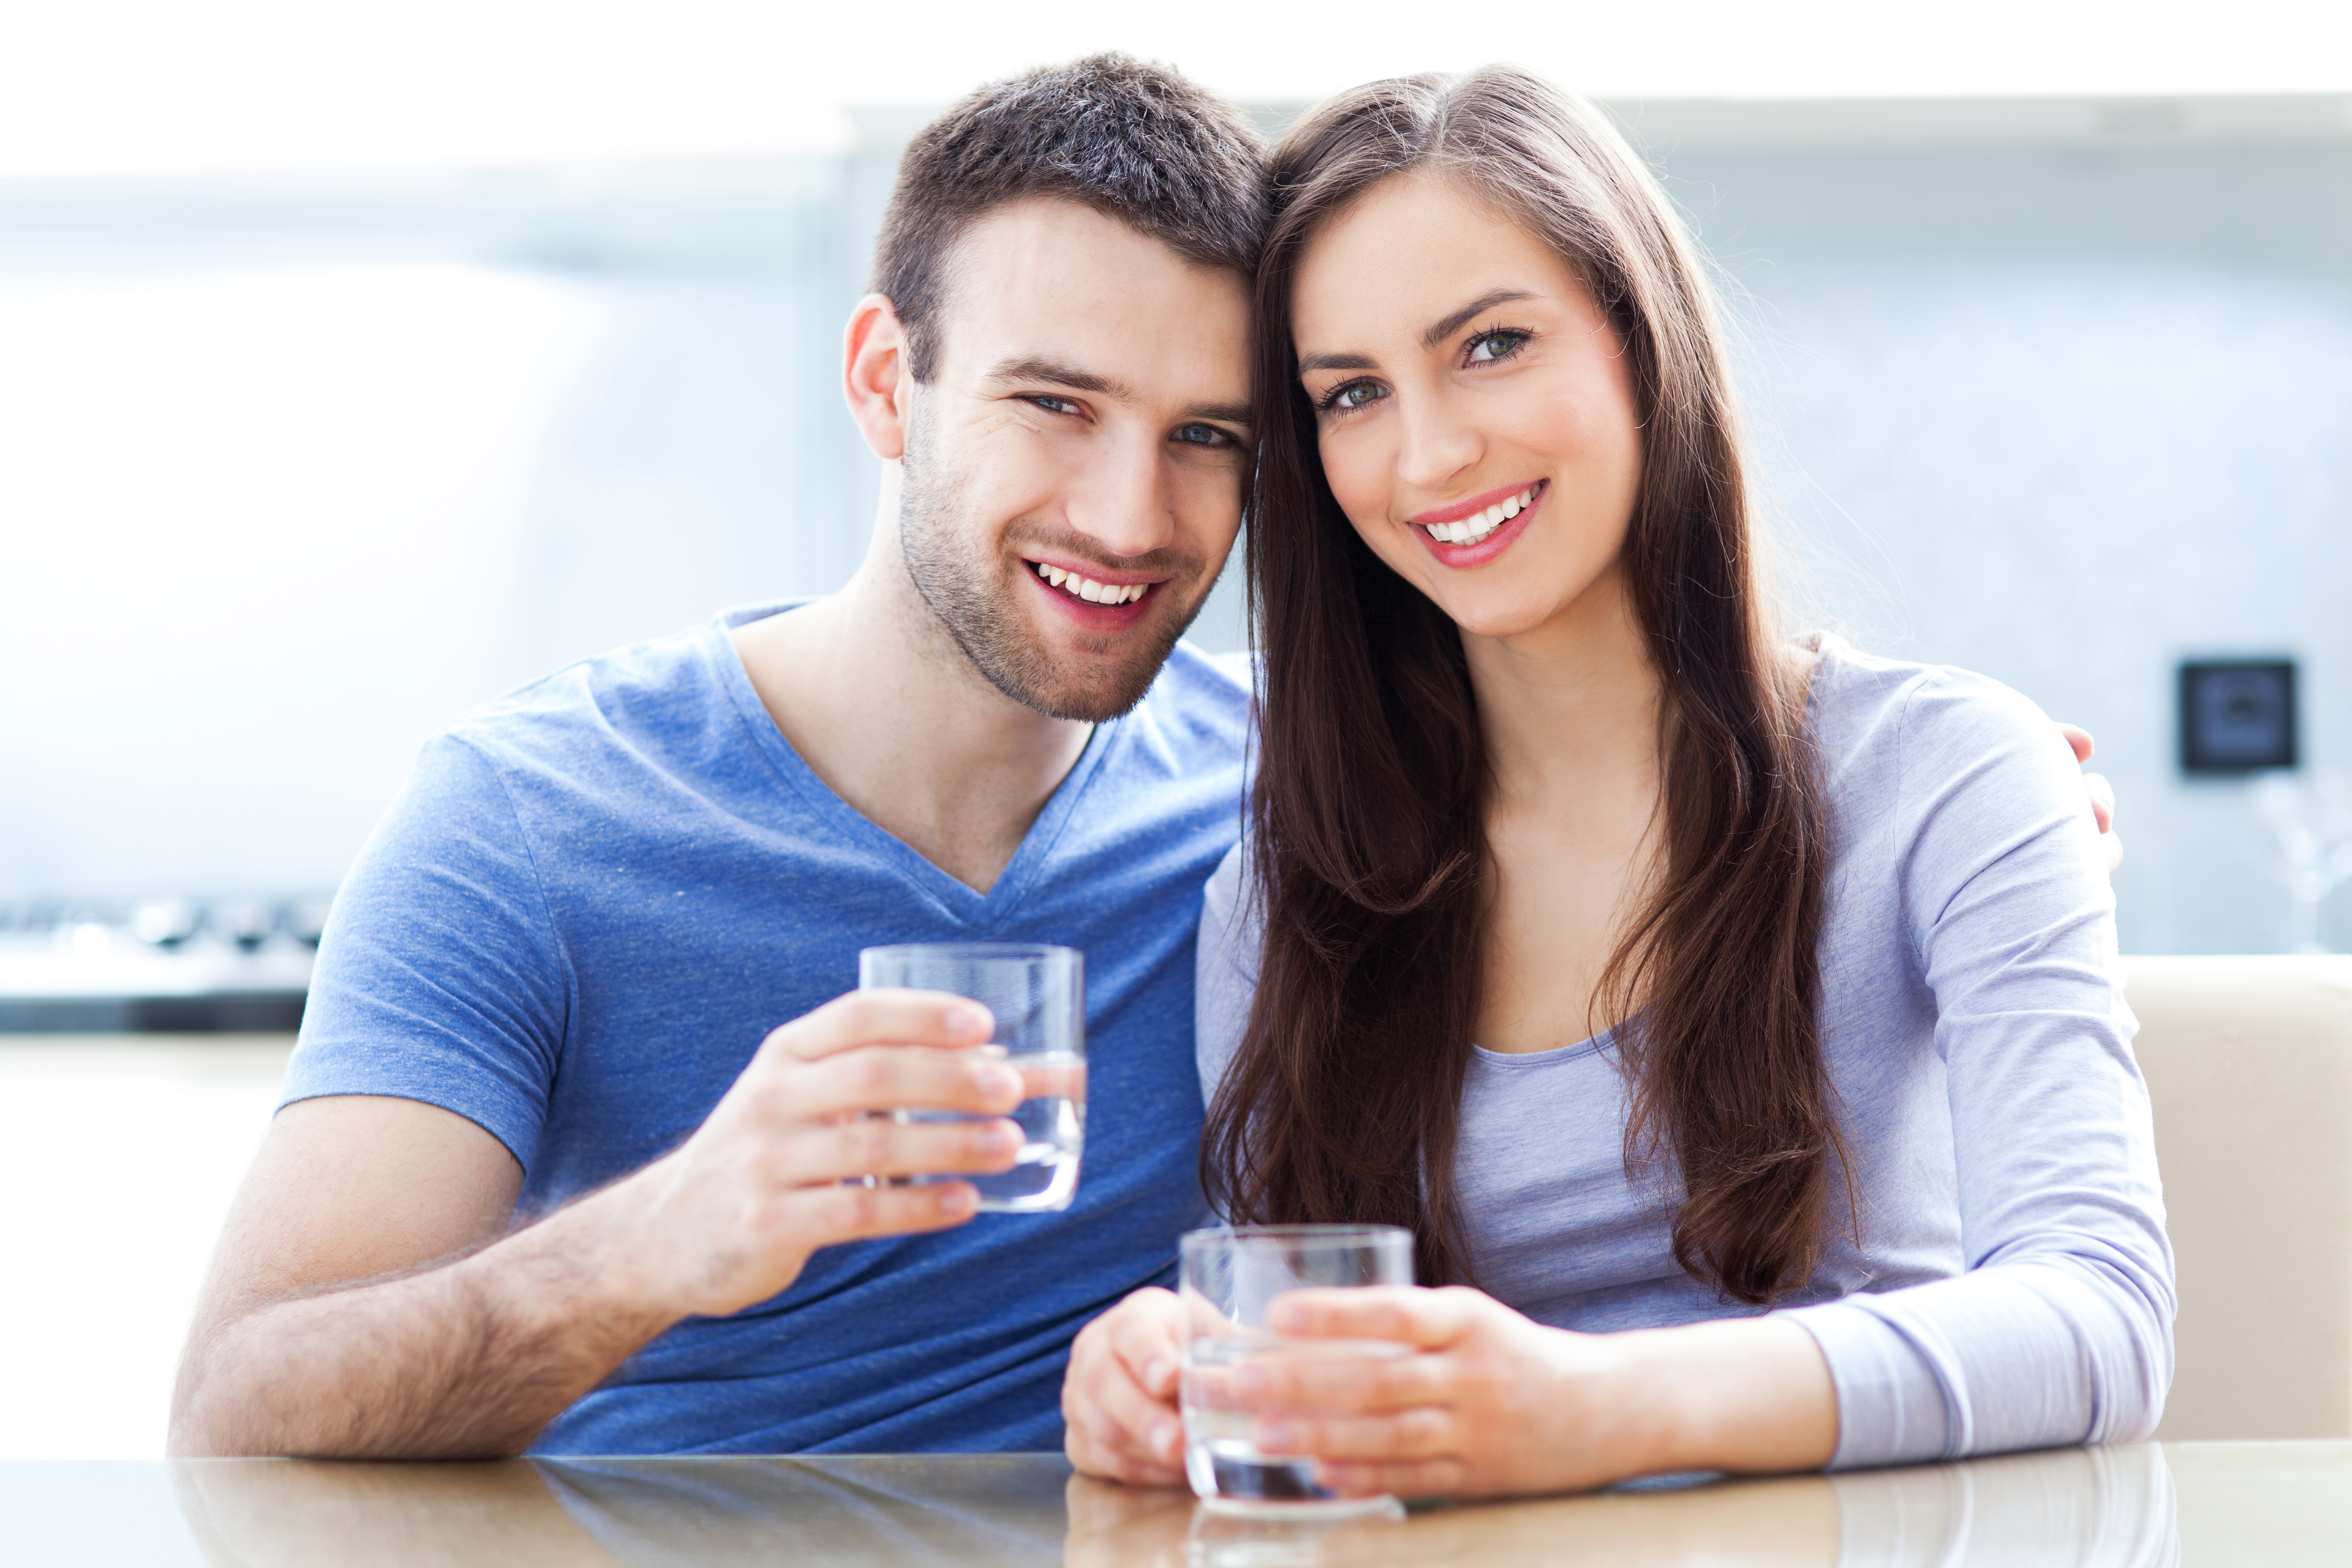 Keep loved ones healthy by keeping arsenic out of drinking water